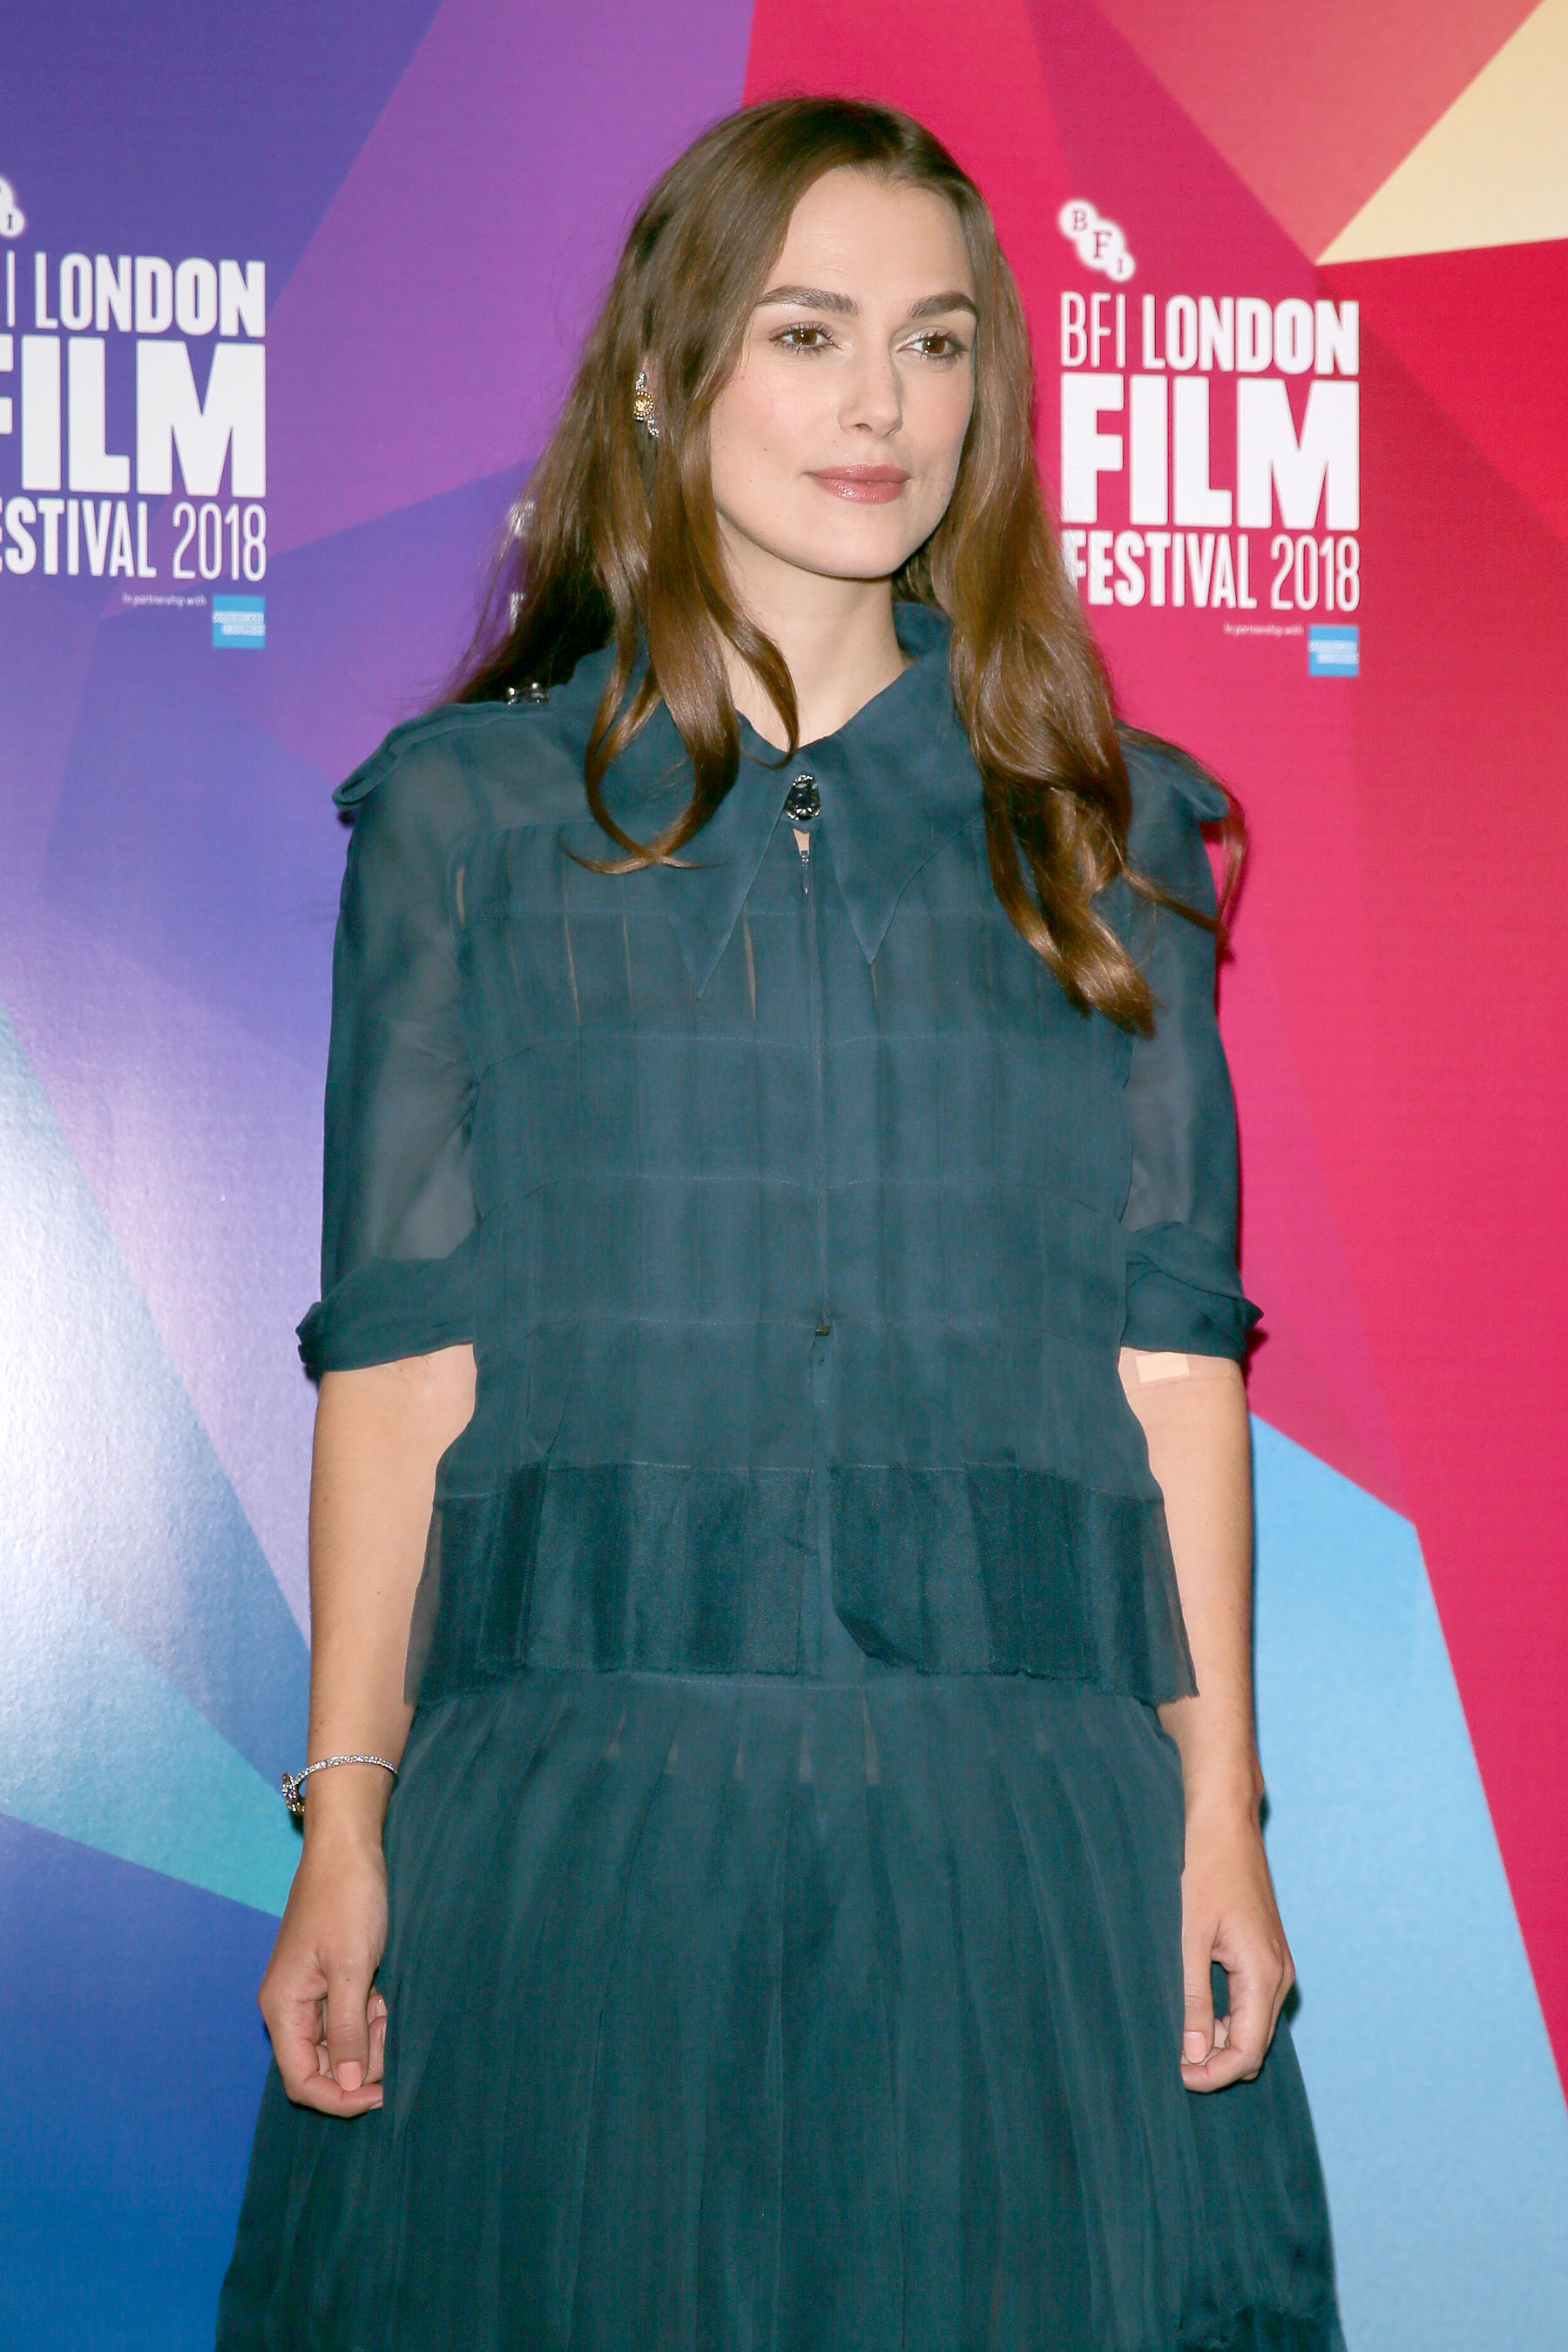 Keira Knightley arriving at London Film Festival to give a talk about her career and promote her new film 'Colette' at the BFI - LondonFeaturing: Keira KnightleyWhere: London, United KingdomWhen: 12 Oct 2018Credit: WENN.com